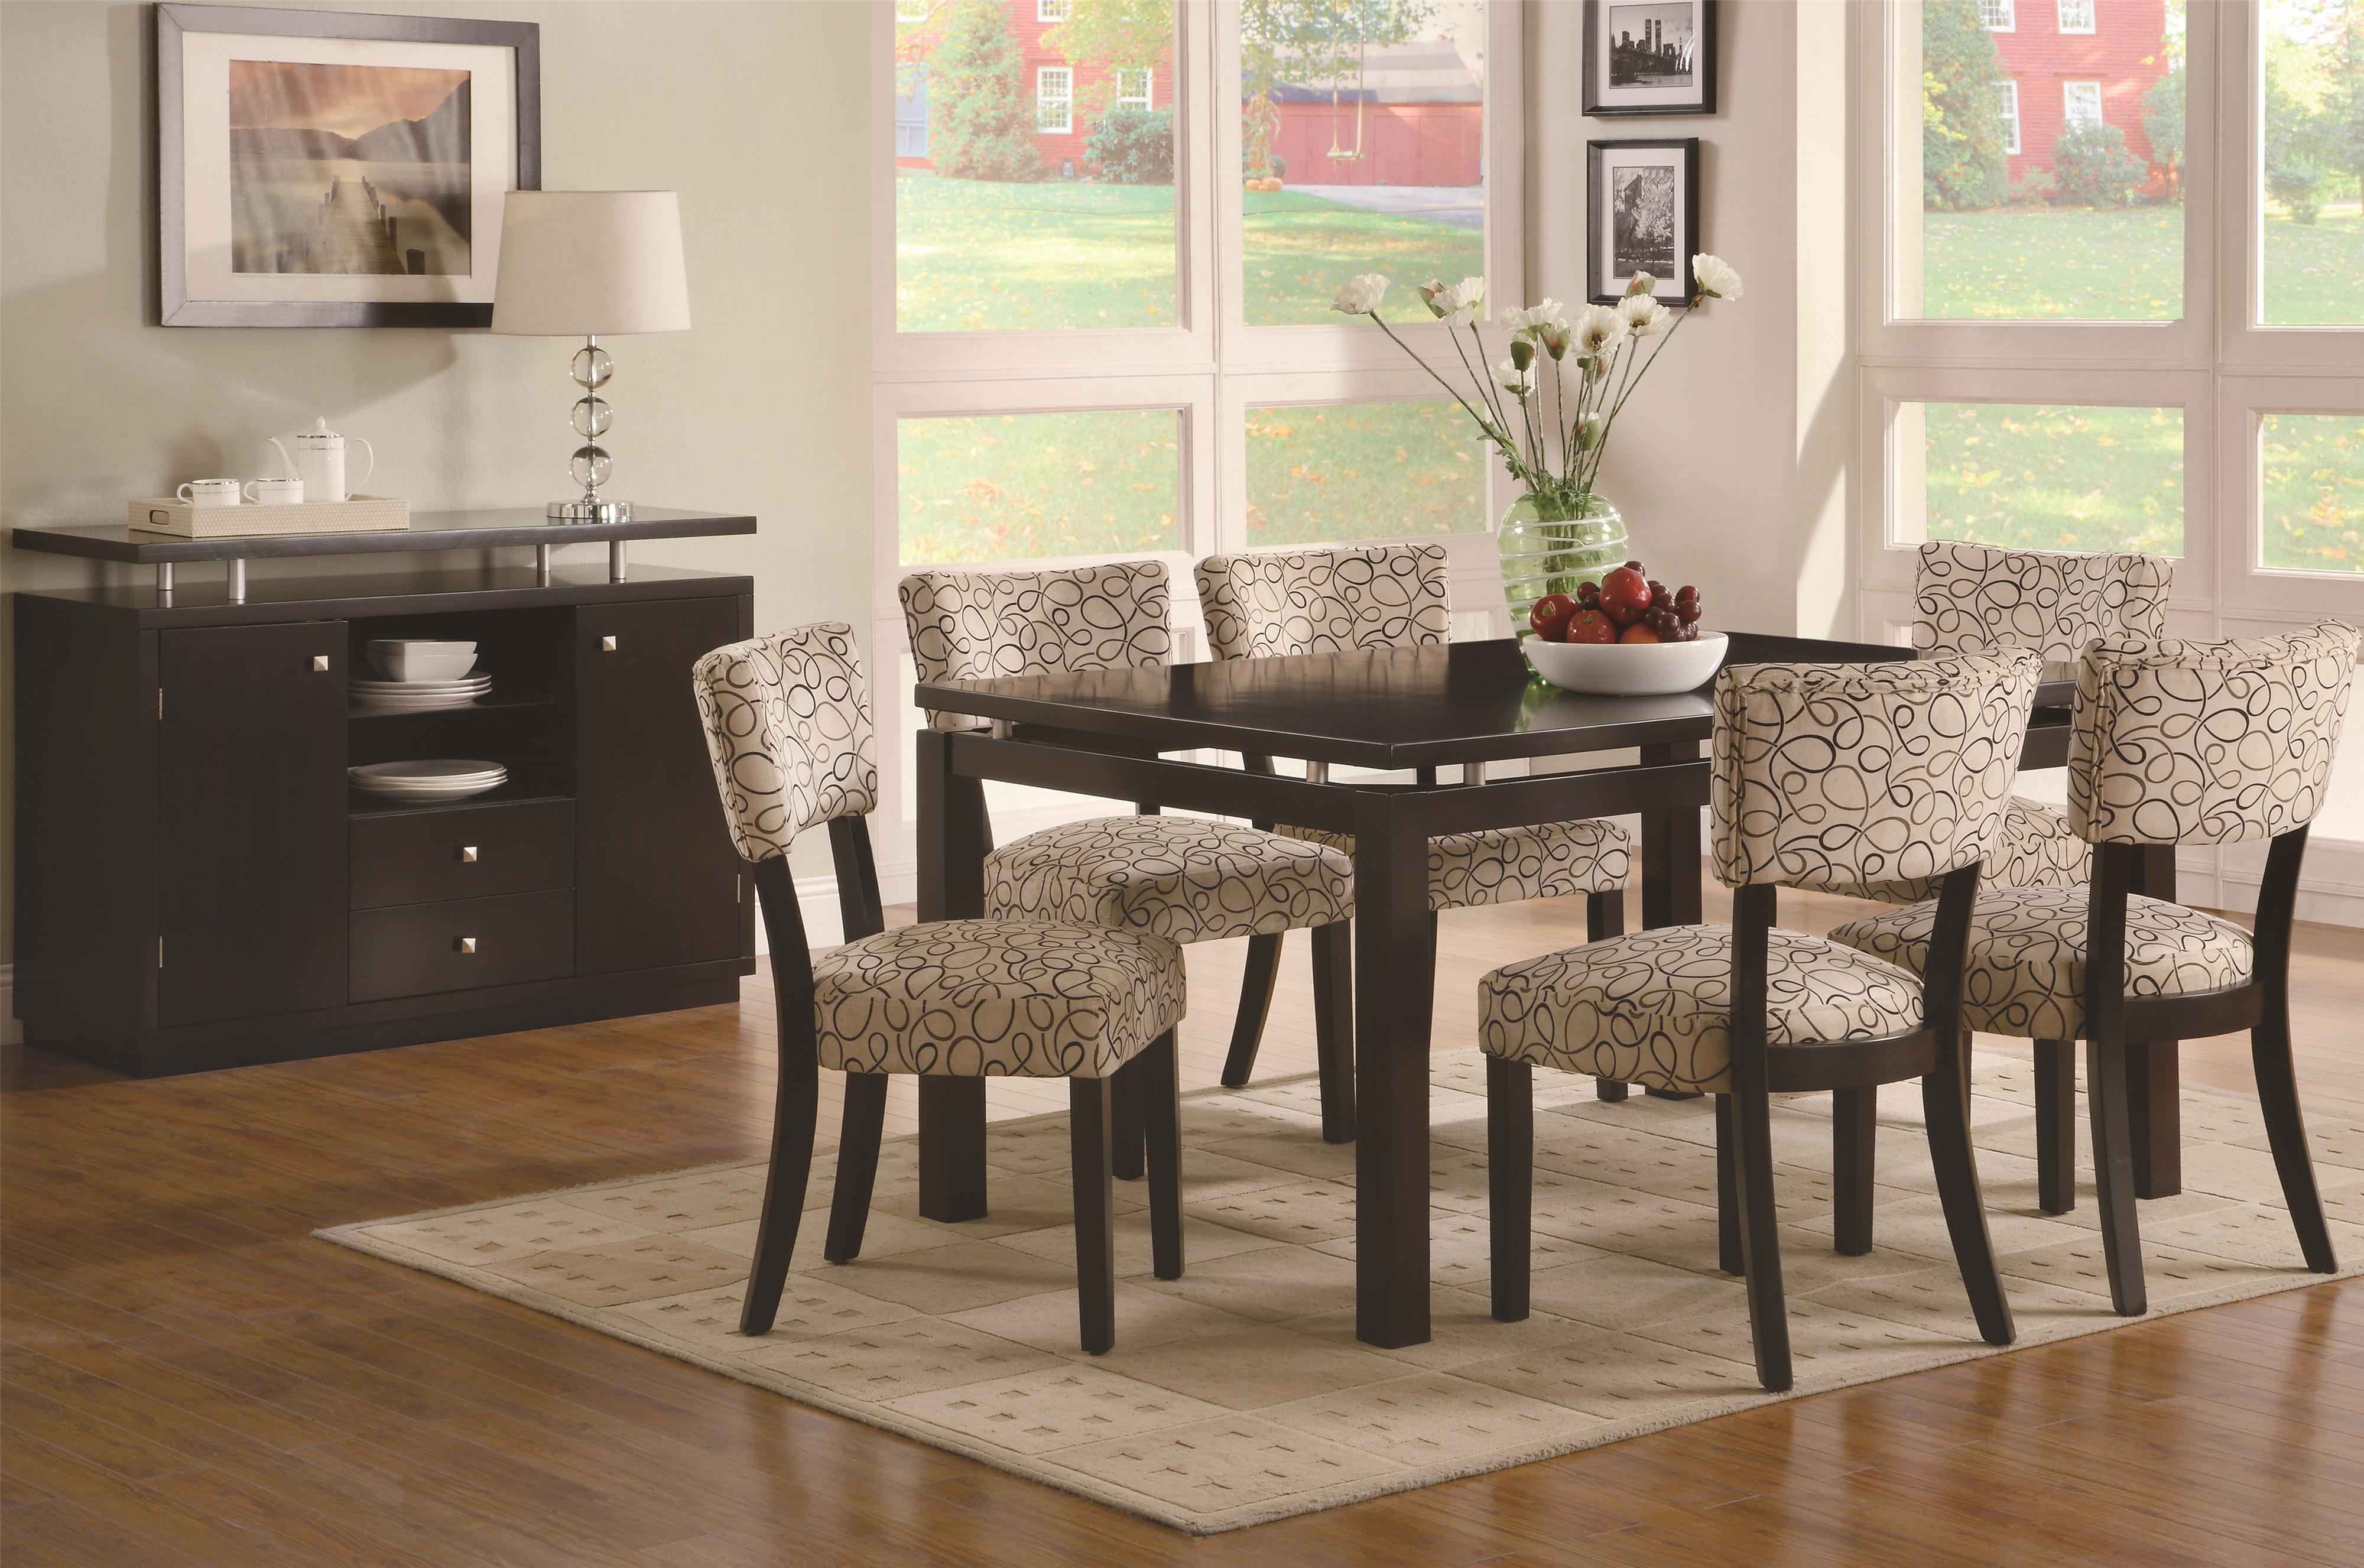 Coaster Libby Casual Dining Room Group - Item Number: 103160 Dining Room Group 1